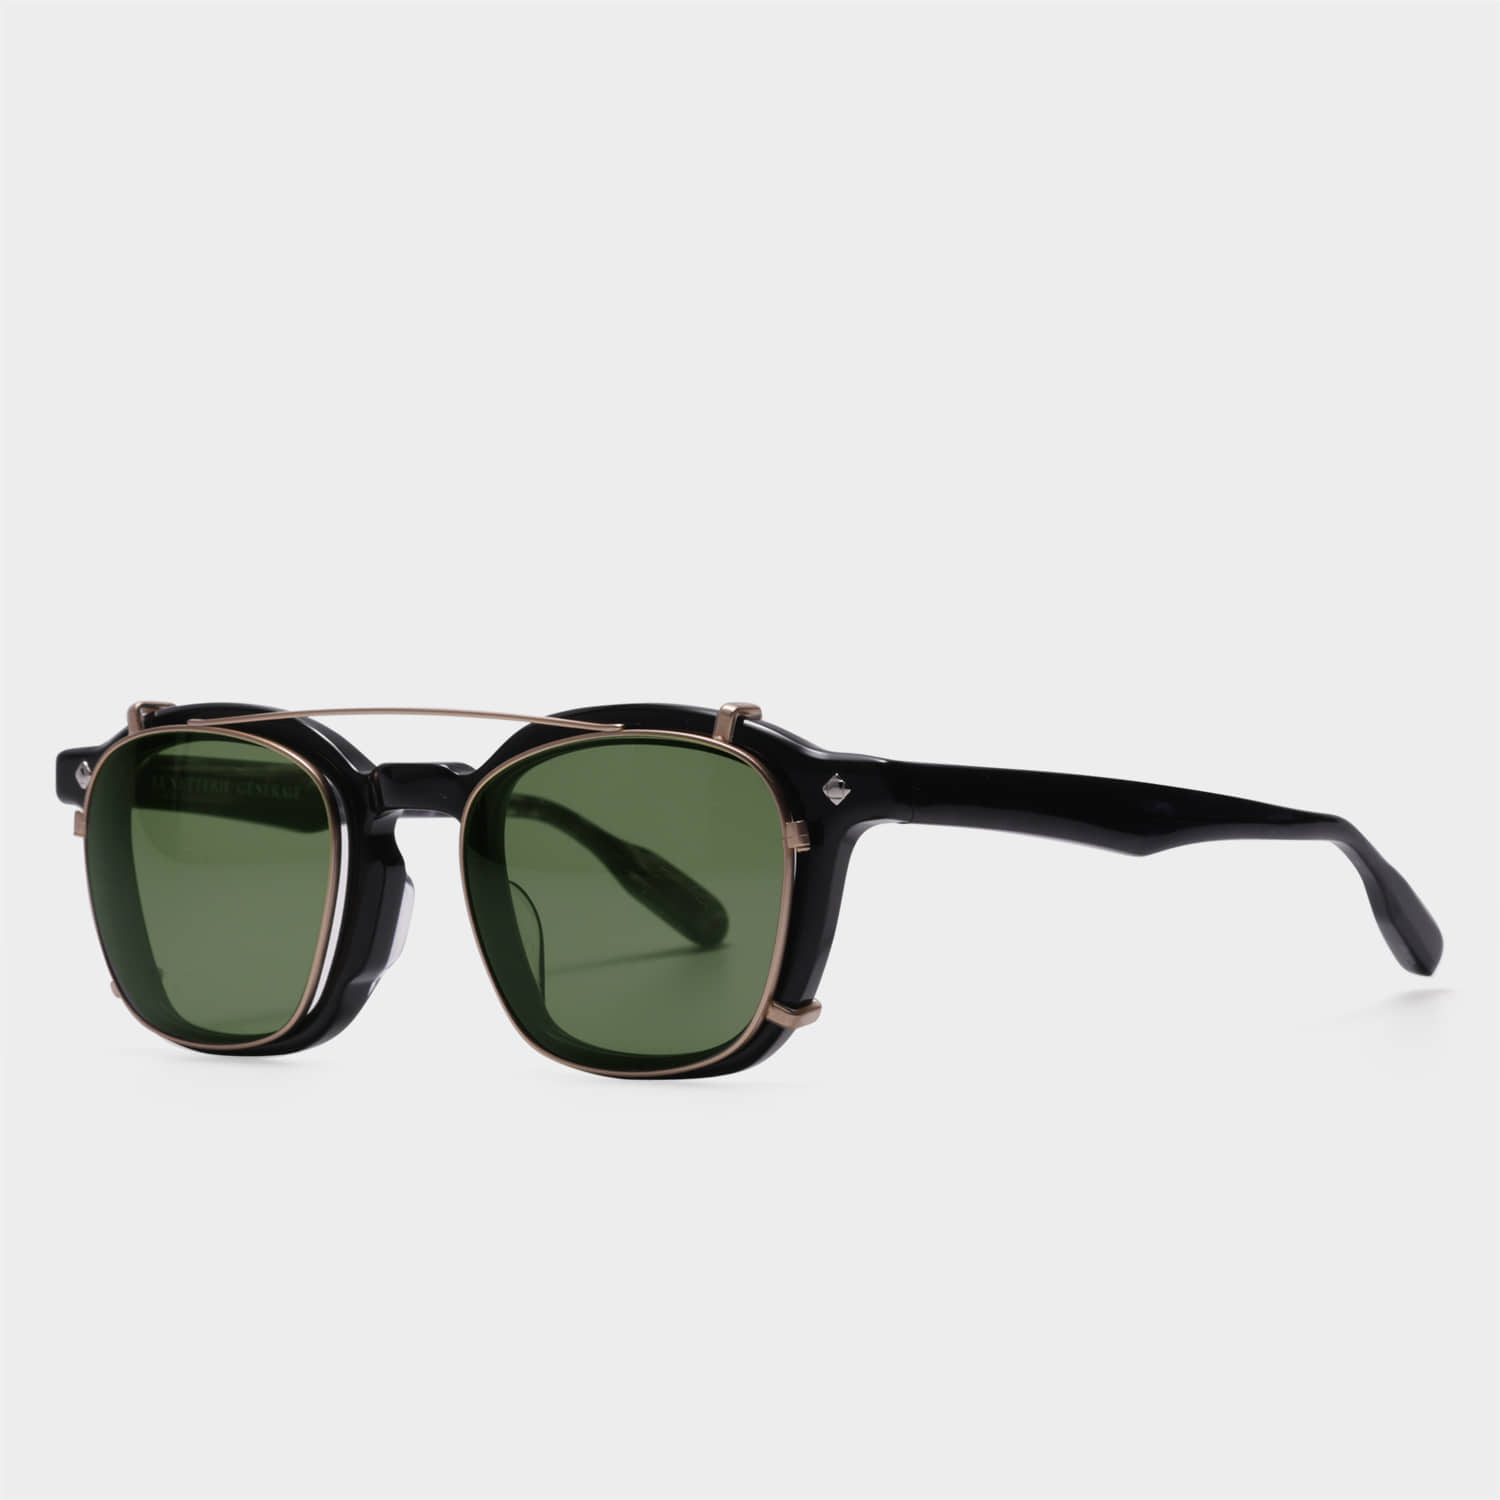 루네뜨리제너럴 COGNAC Brushed Gold (Green Lens)